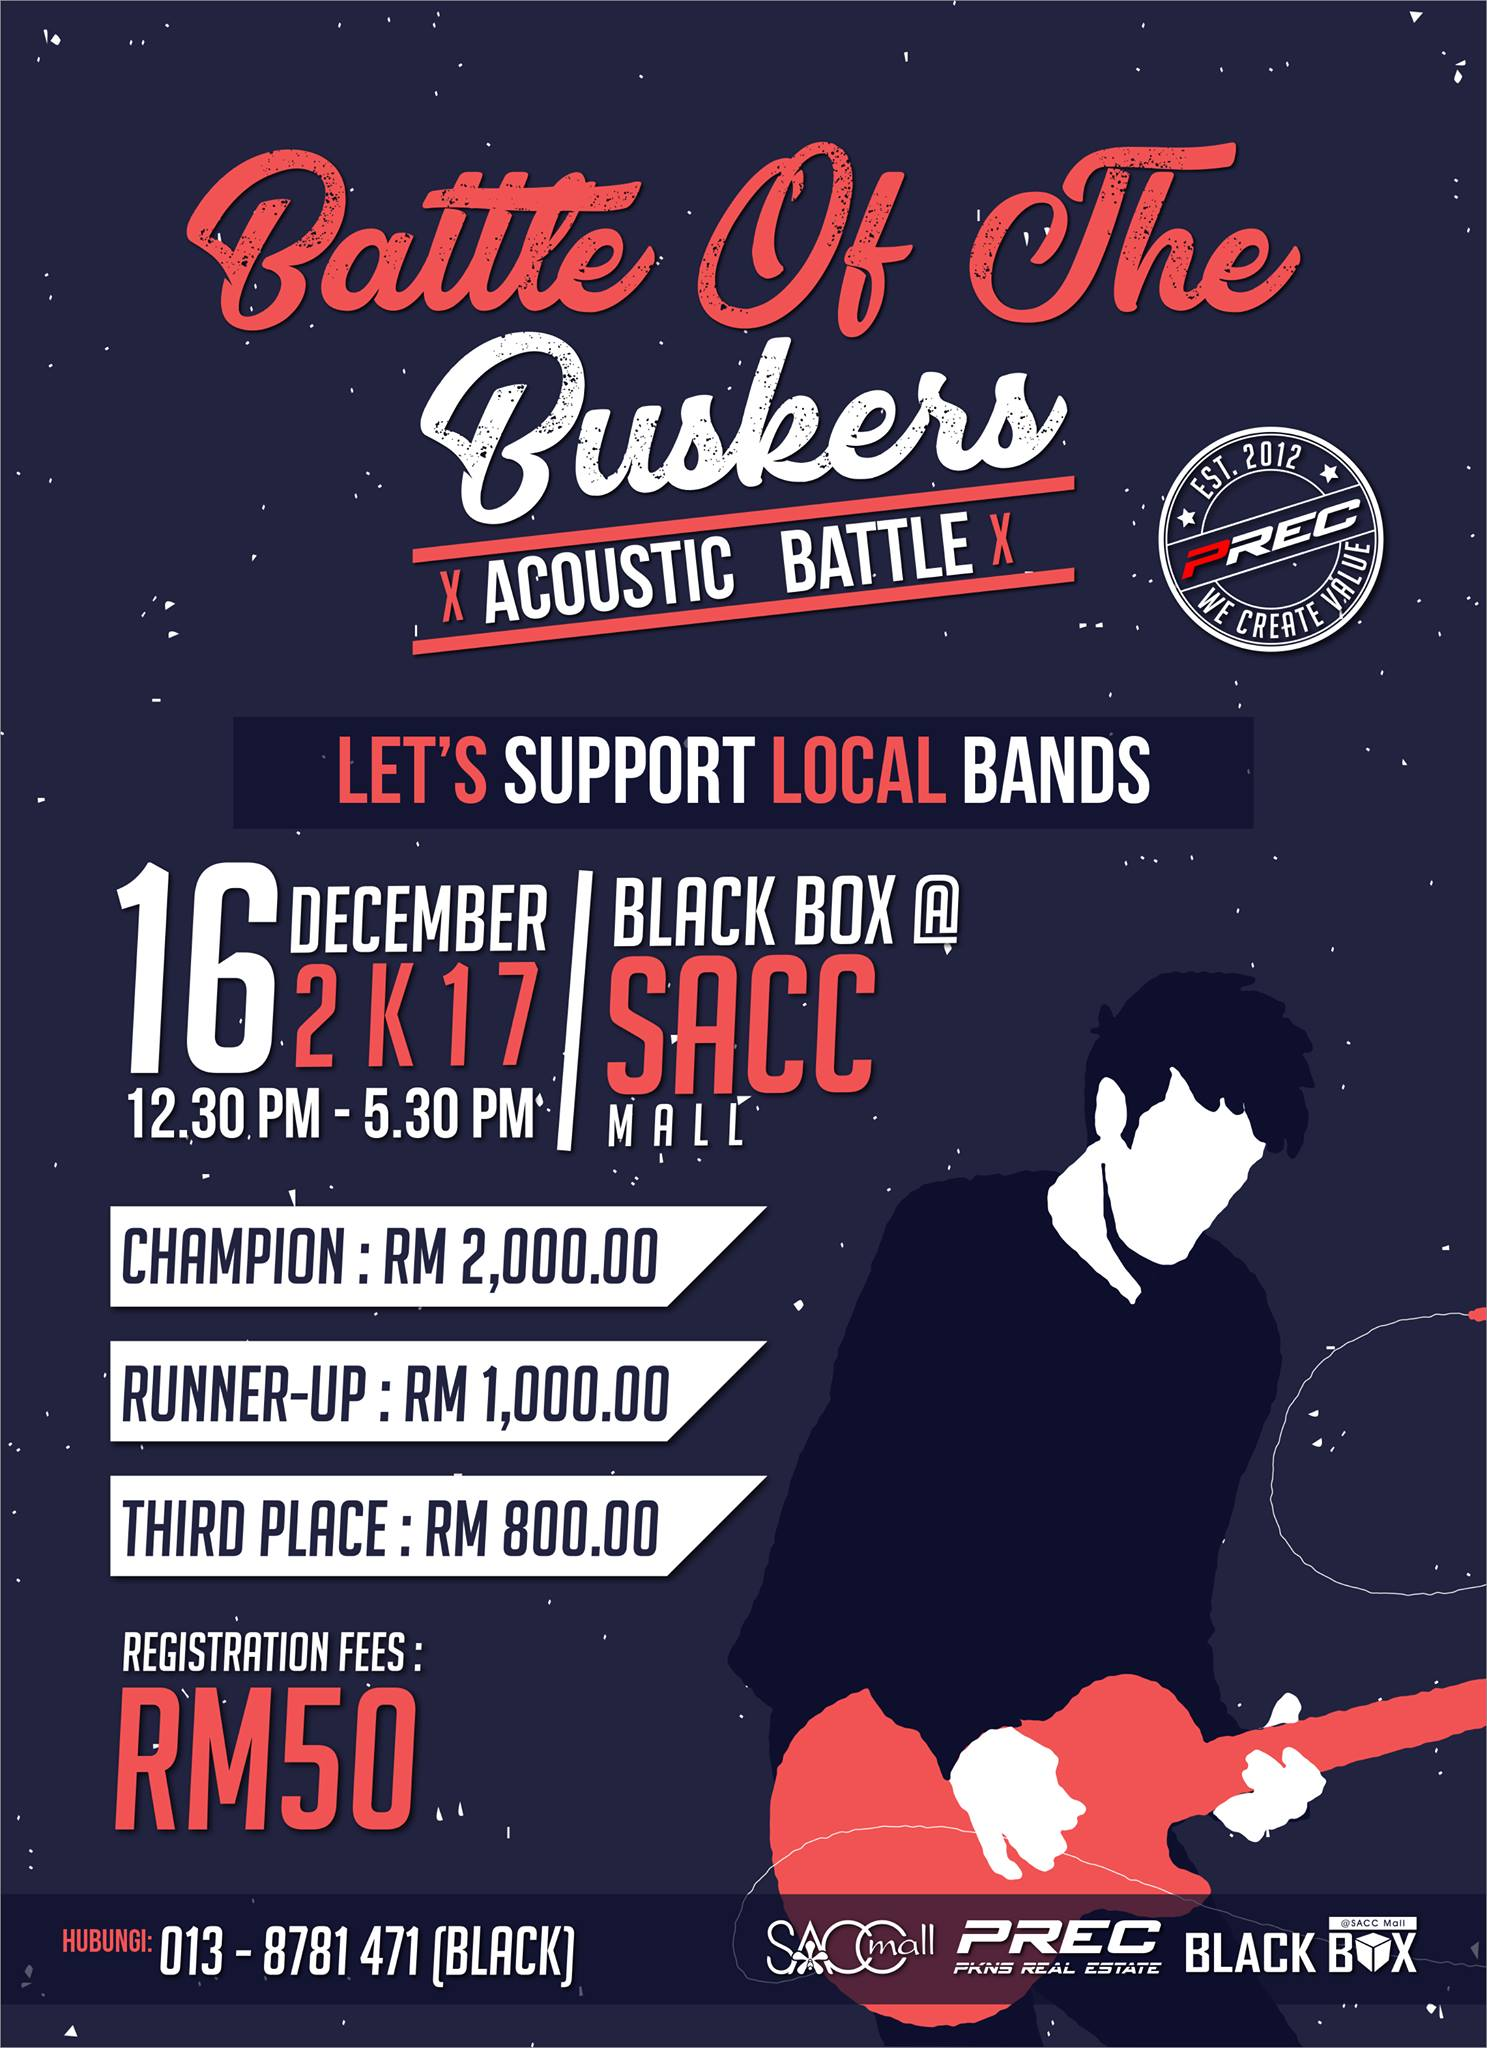 """BATTLE OF THE BUSKERS"" 2017 di BLACKBOX @ SACC Mall"